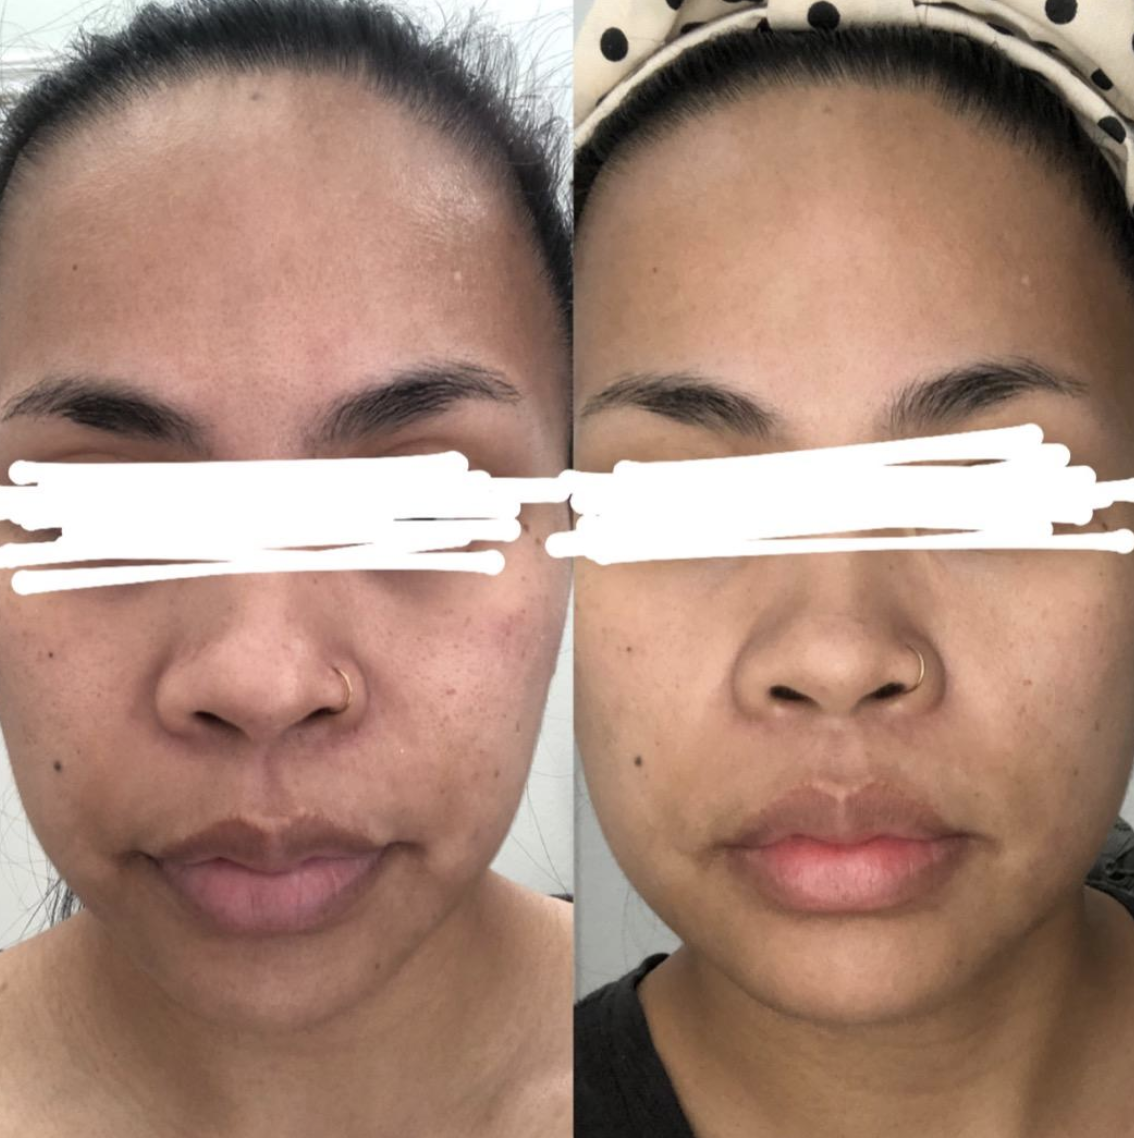 reviewer with visible scarring on left and less visible scarring on right